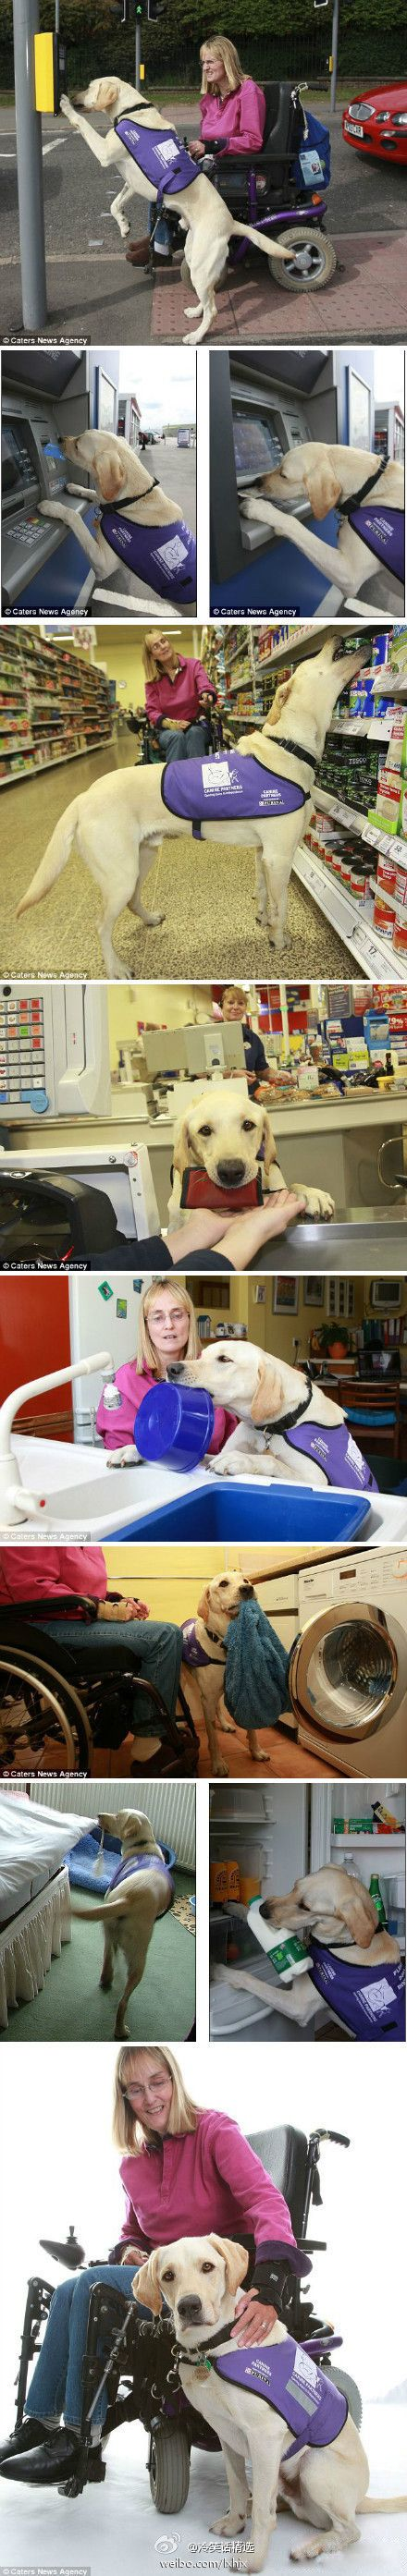 Heartwarming... just some of the many ways a service dog helps his owner